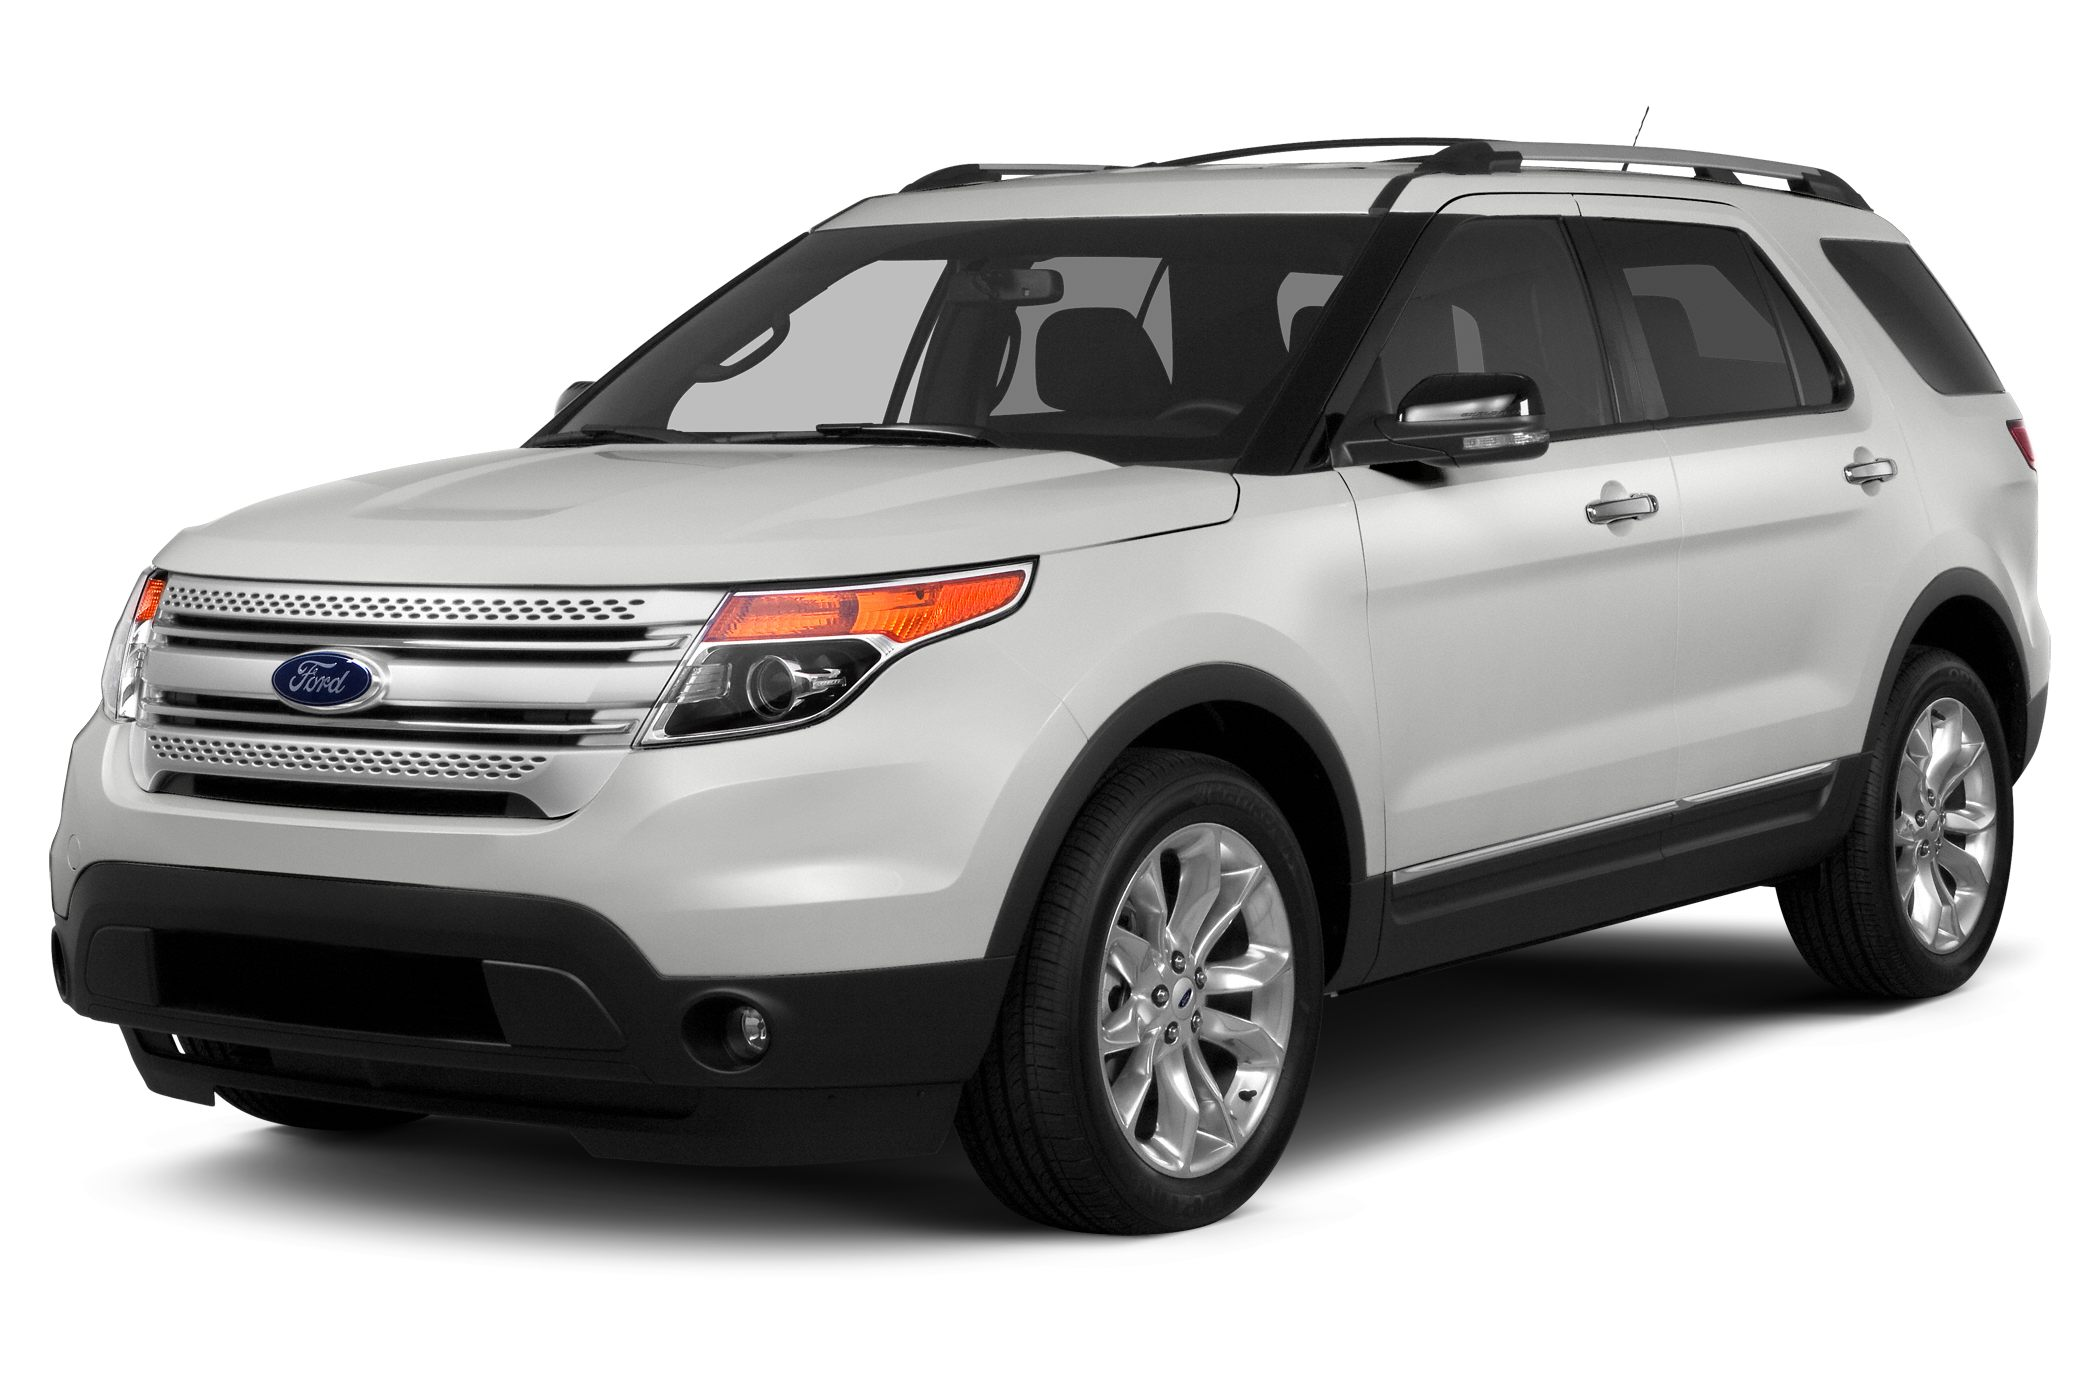 2015 Ford Explorer Base SUV for sale in Castle Rock for $34,655 with 10 miles.